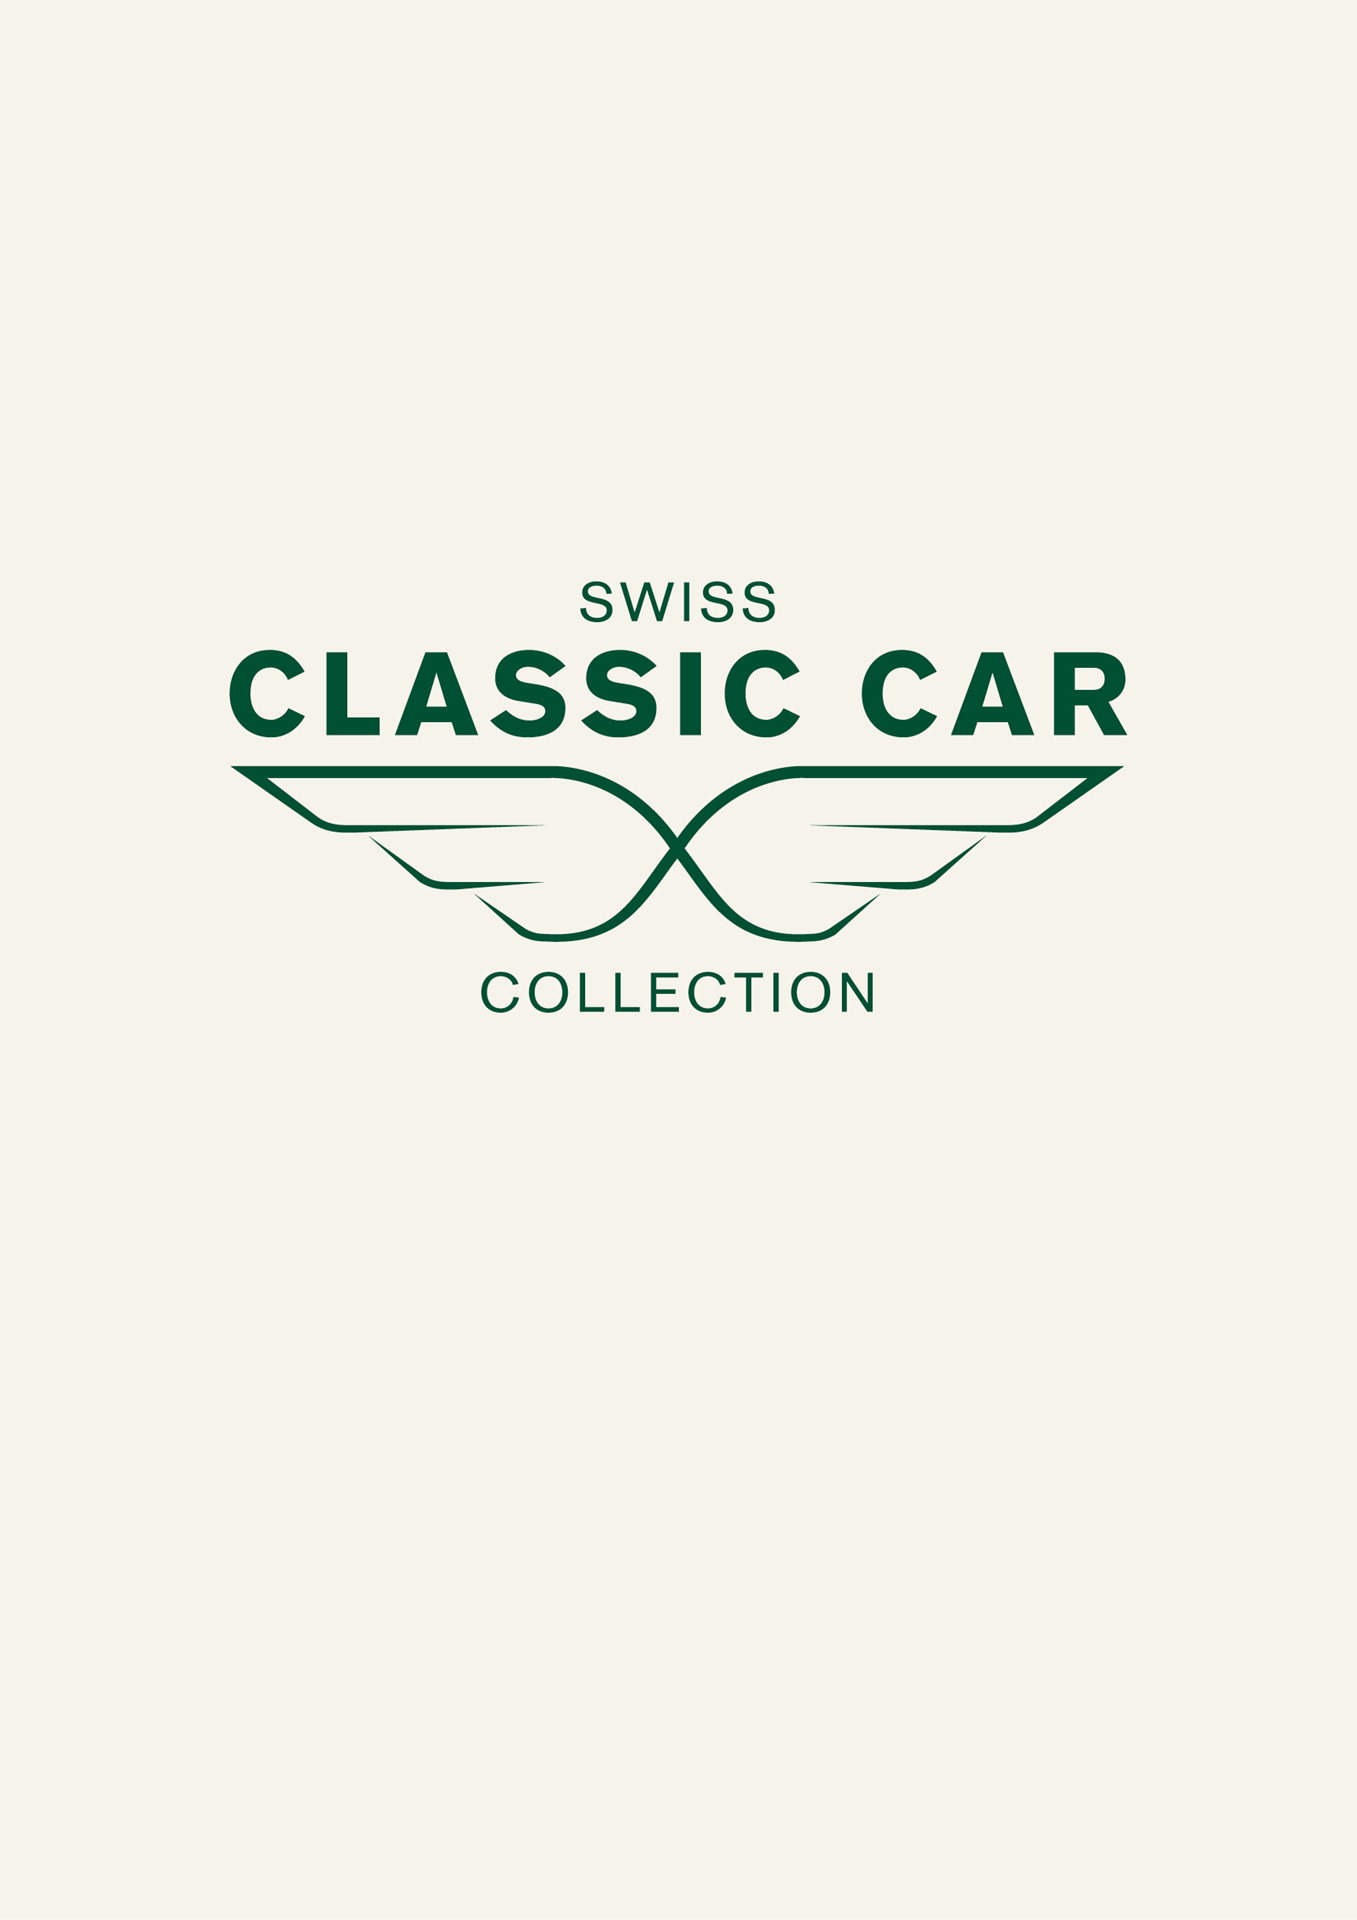 Swiss Classic Car Collection